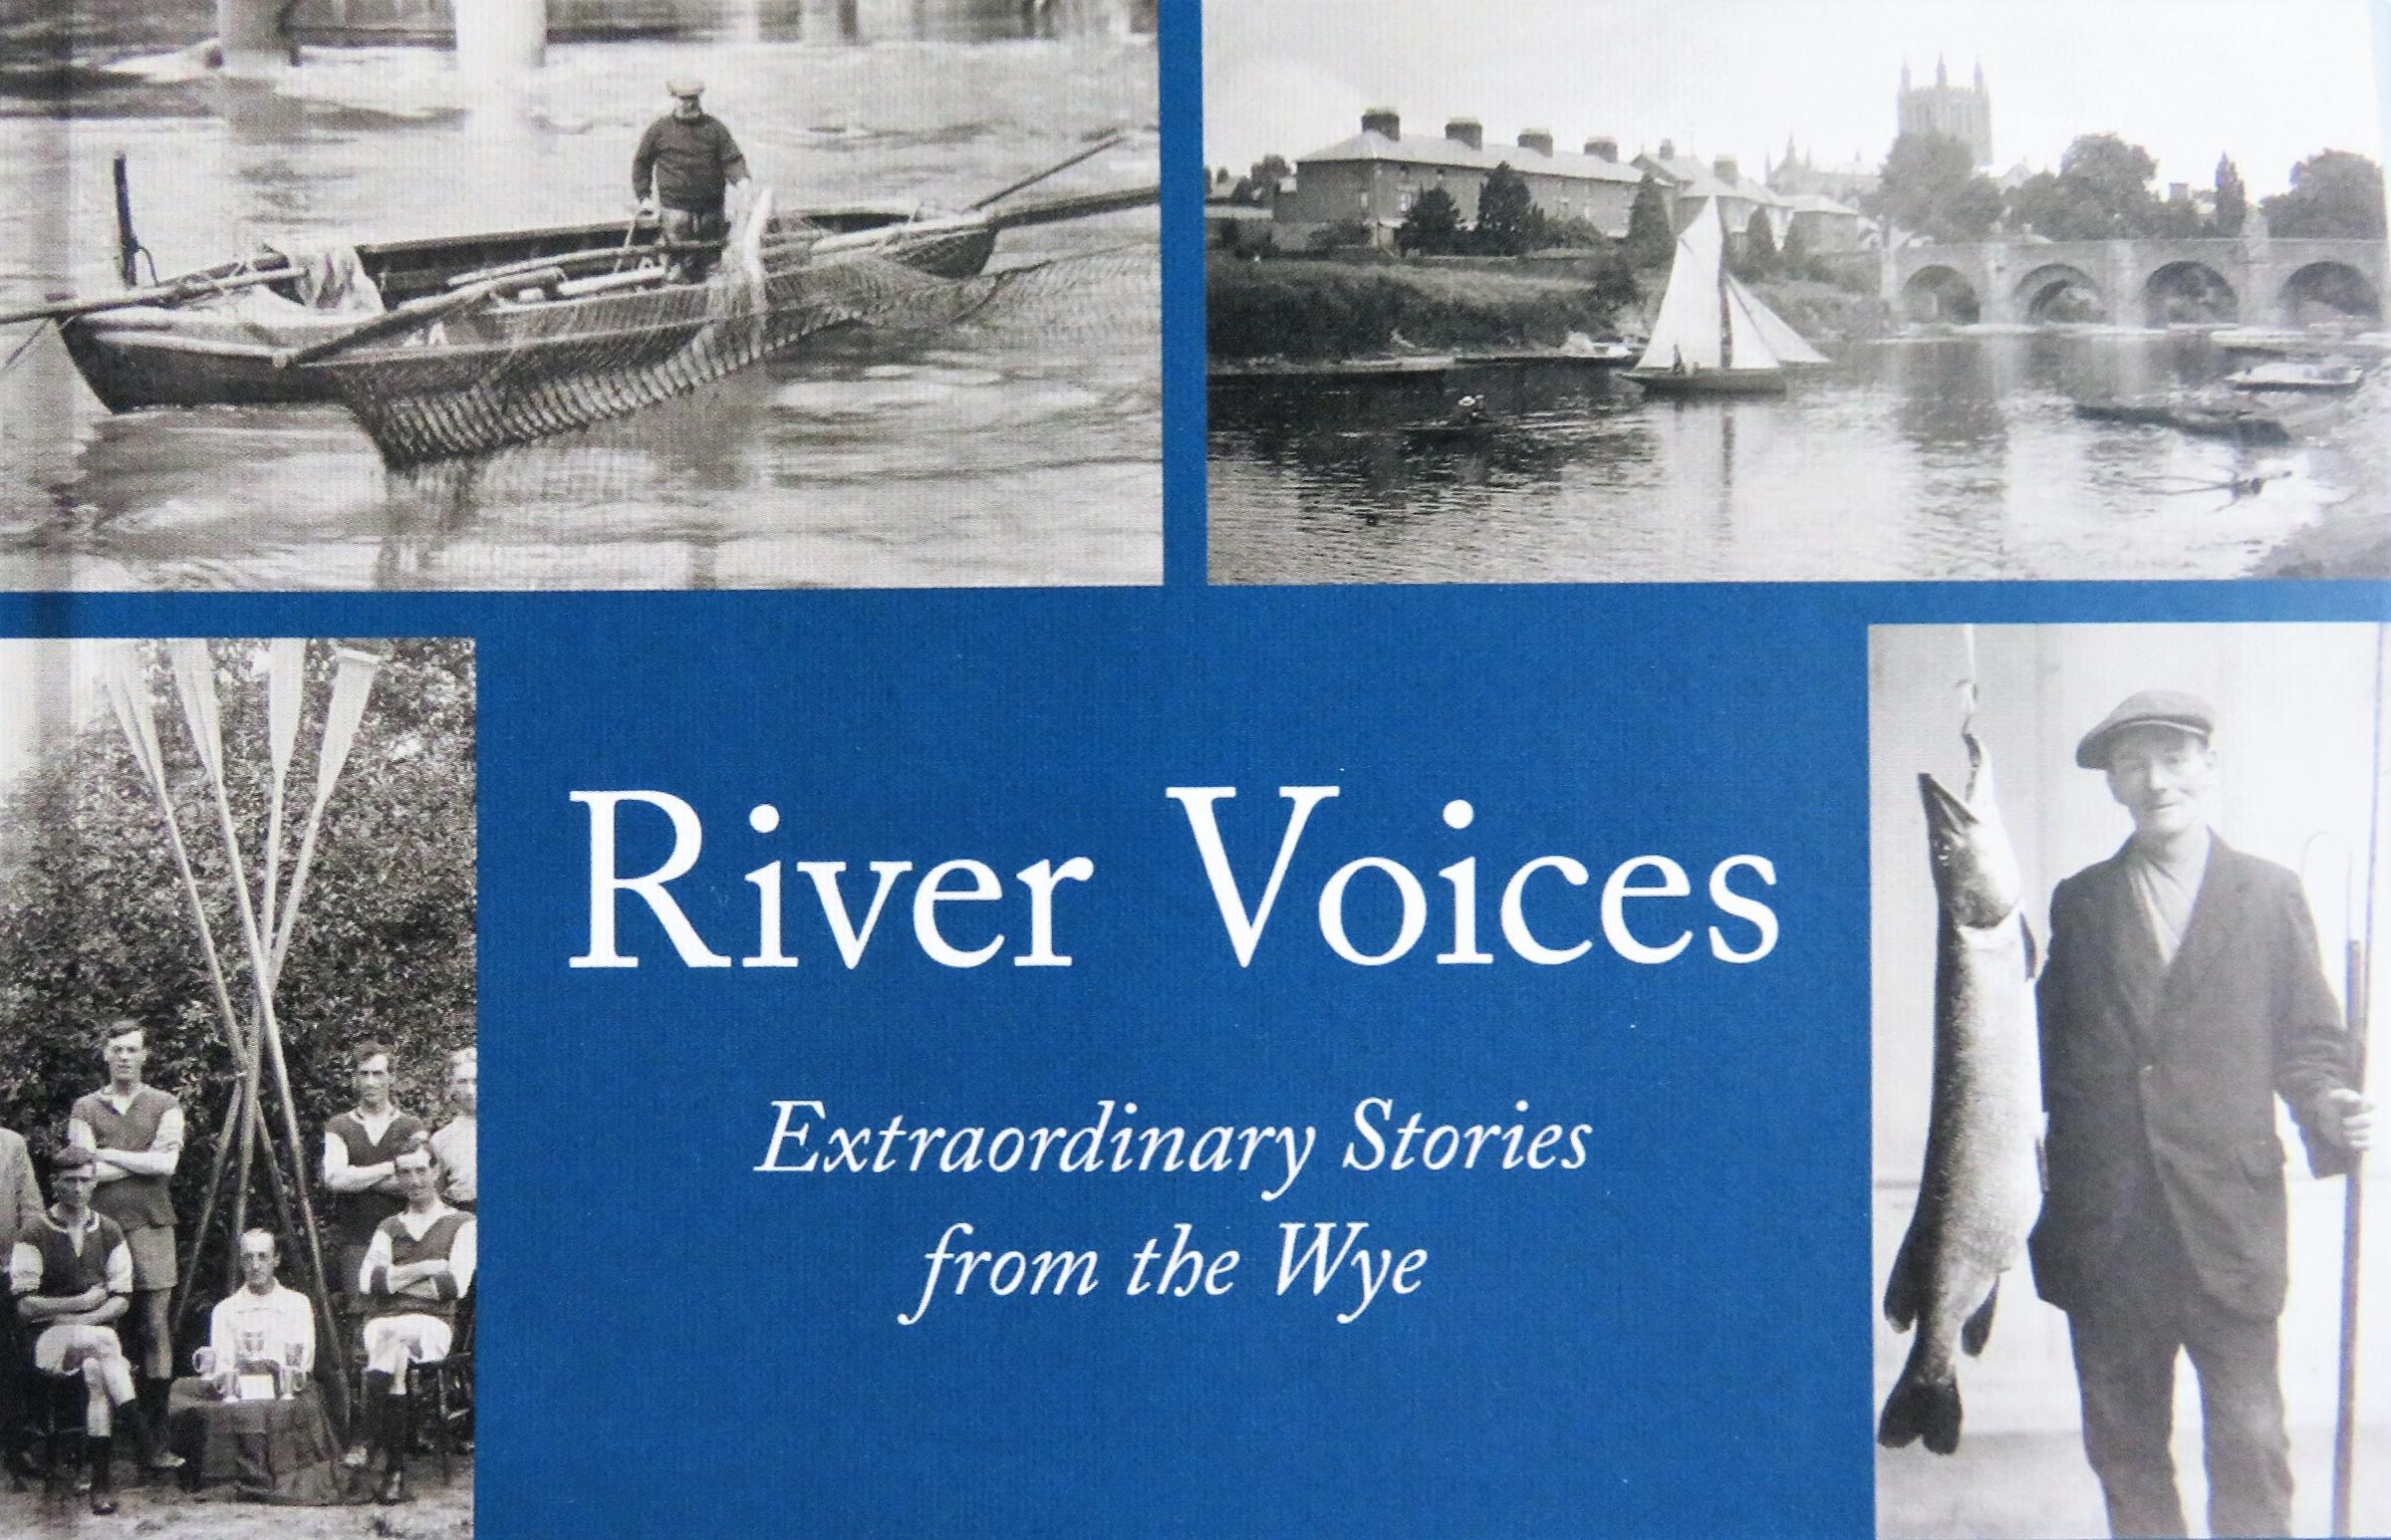 River Voices: Extraordinary Stories from the Wye